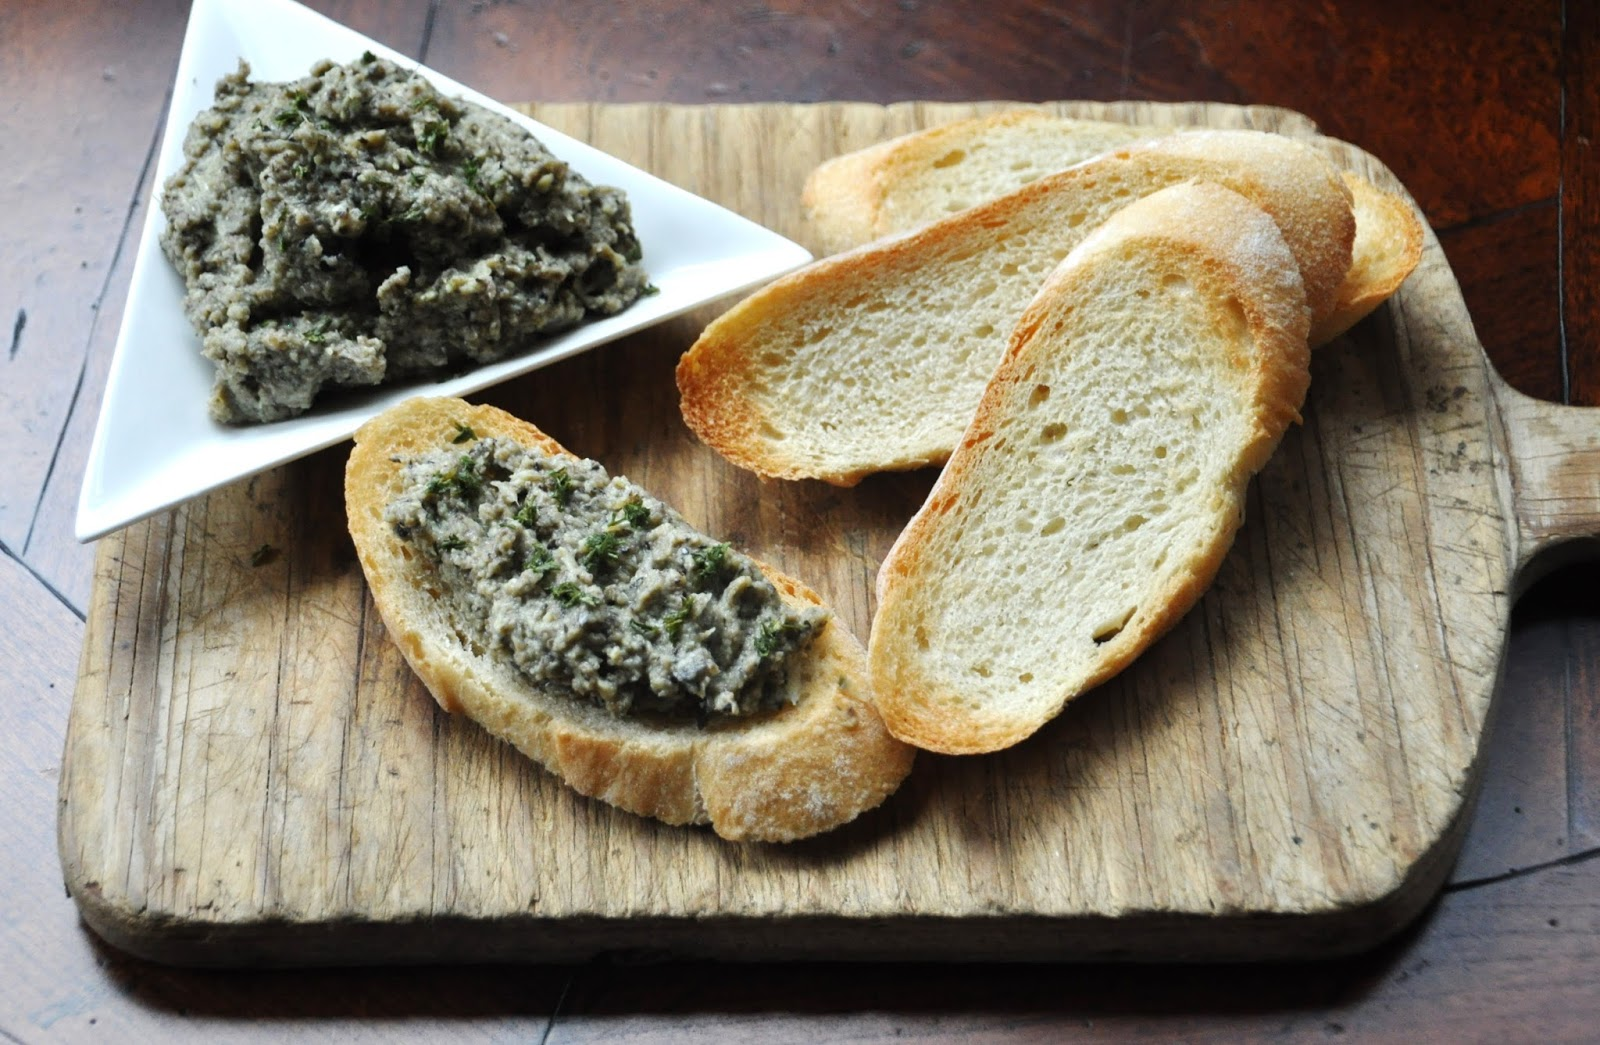 LA GRAHAM: ARTICHOKE-OLIVE TAPENADE ON CROSTINI